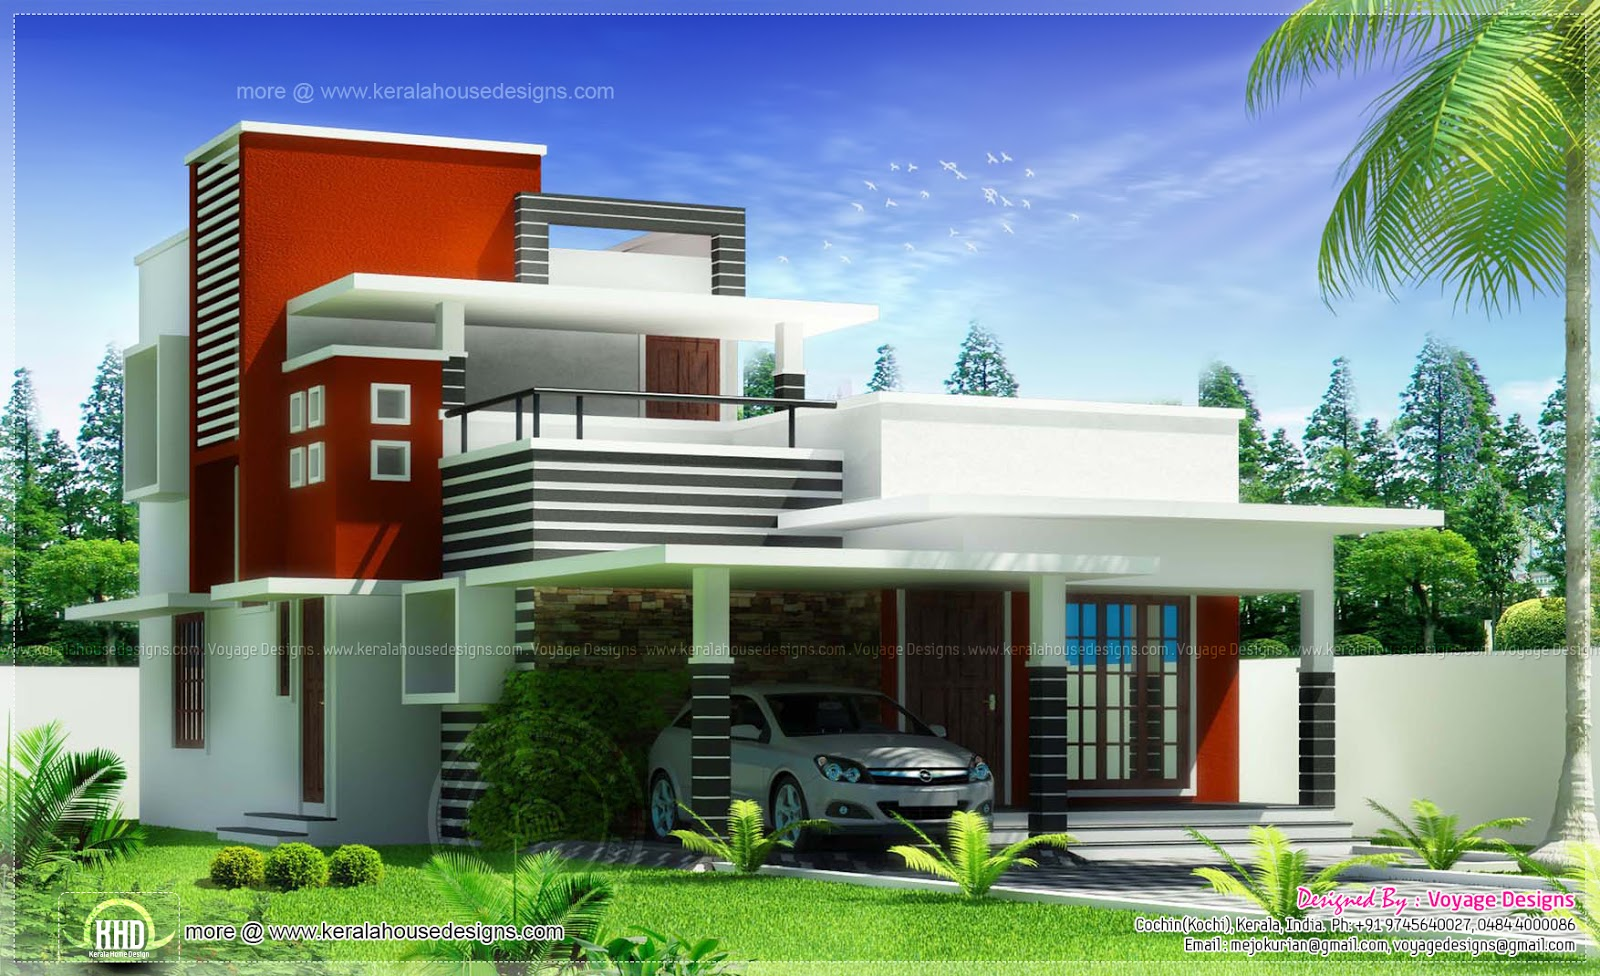 3 bed room contemporary style house kerala home design for Contemporary home plans